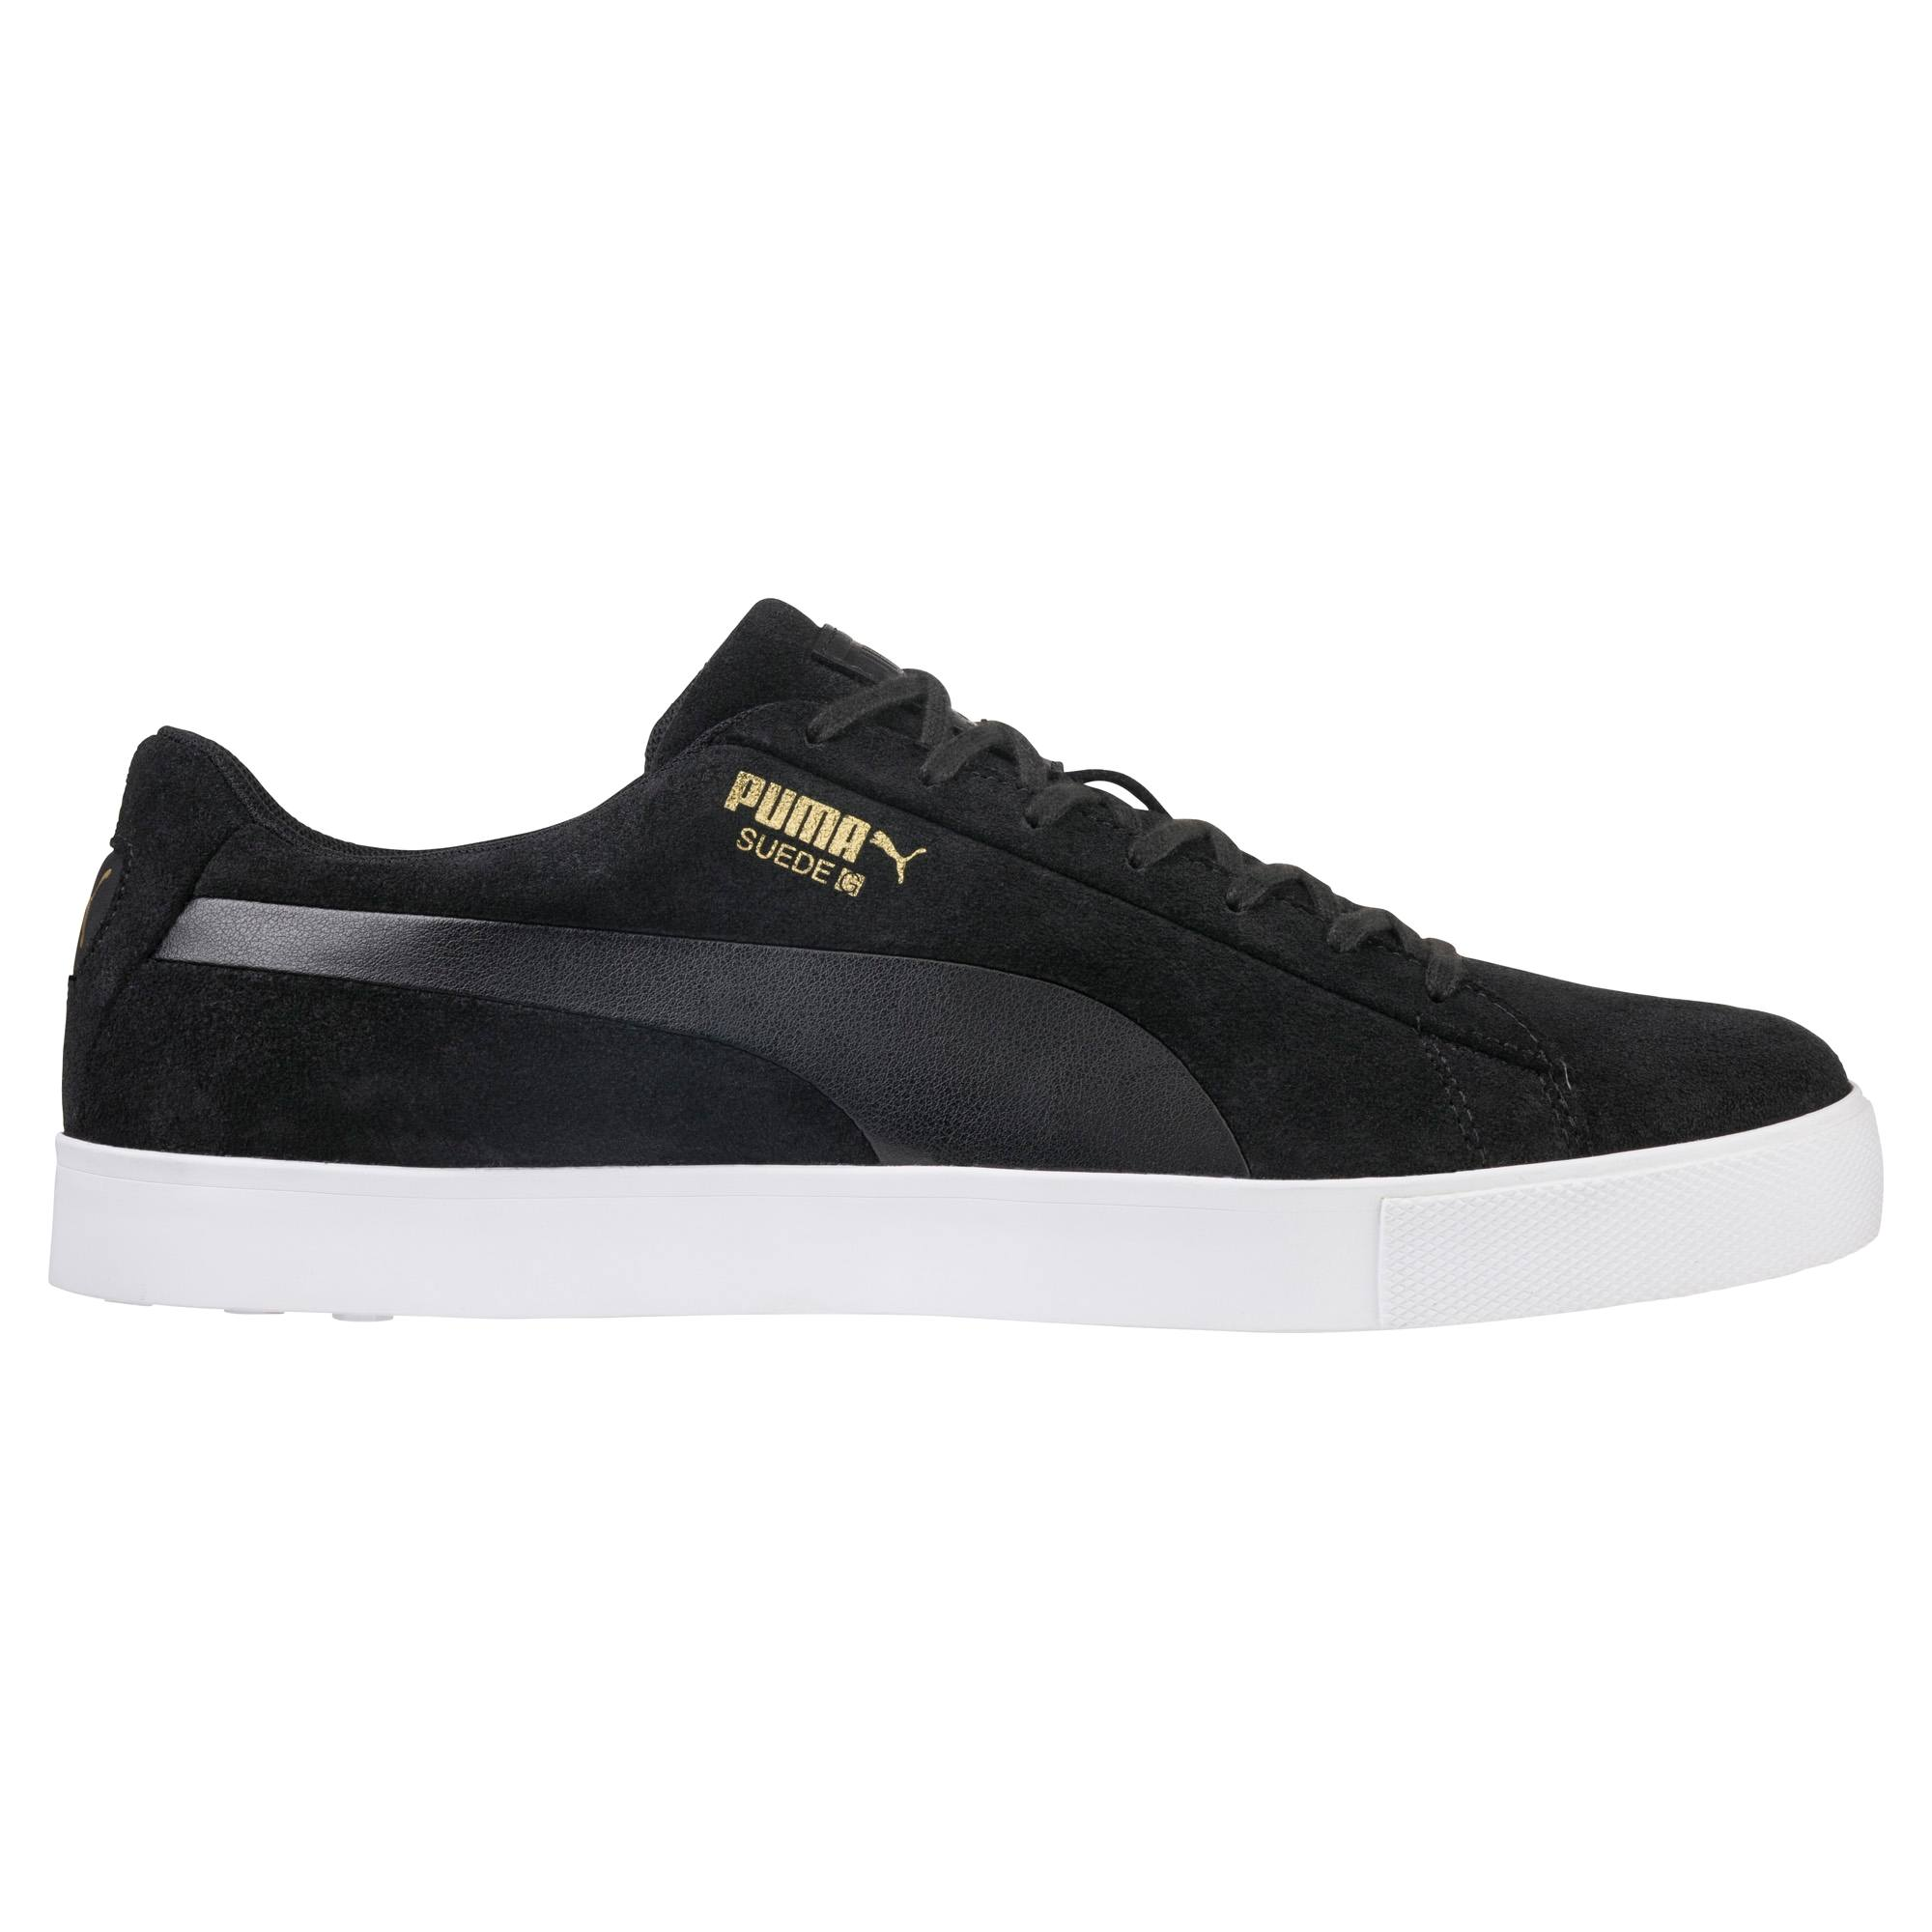 0306f0b8614 Puma Limited Edition Ryder Cup Suede G Team Europe Shoes ...